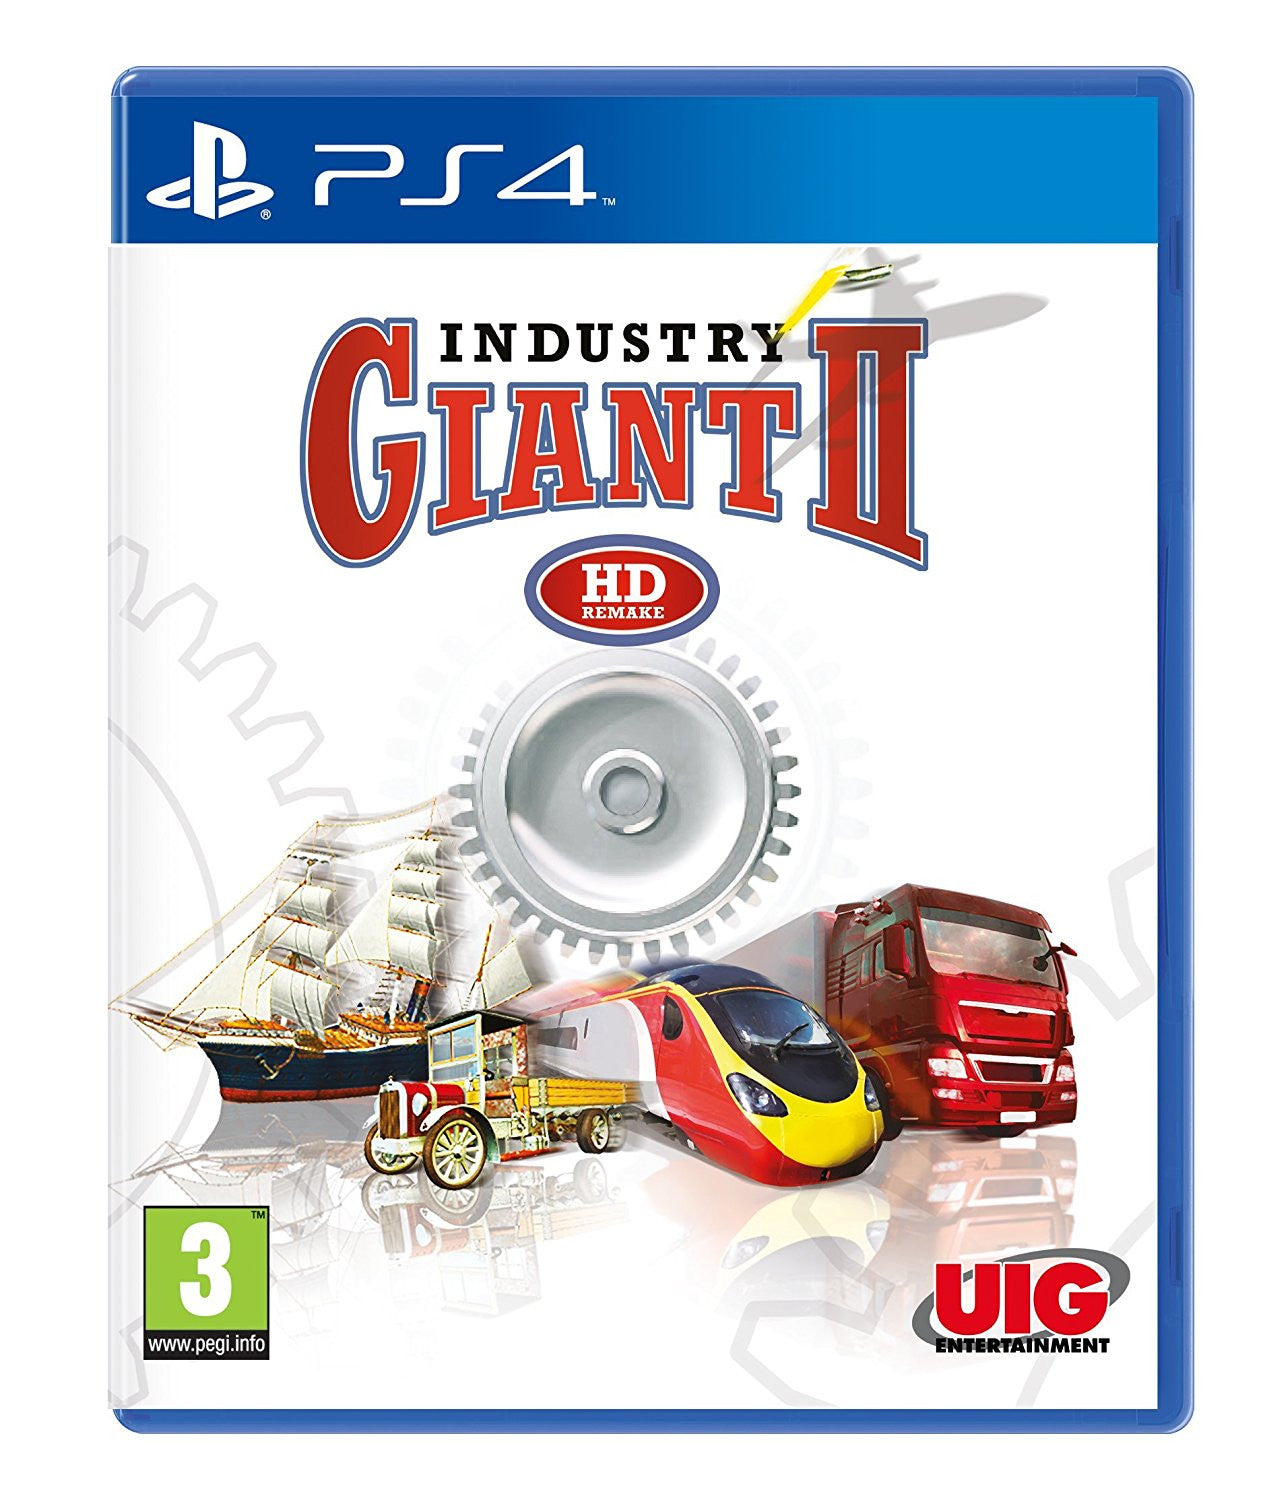 Industry Giant 2 HD Remake (PS4) - Video Games by Ikaron The Chelsea Gamer